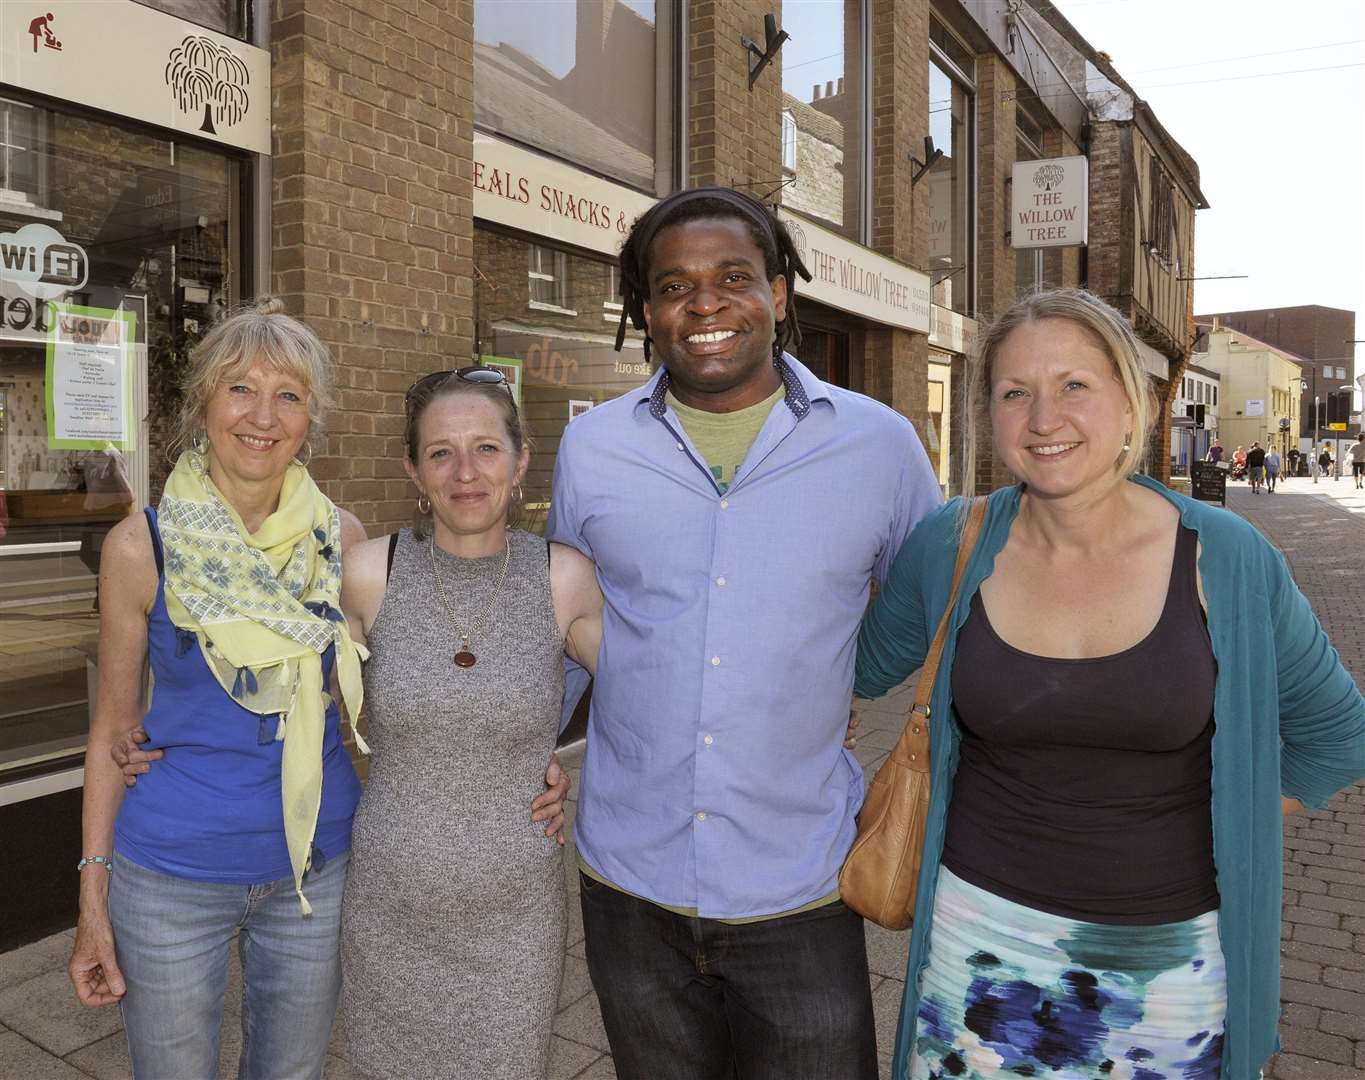 The new business and owners of the Soul Cafe and Restaurant in Tower Street King's Lynn (former Willow Tree Restaurant) and it is due to open early to mid-July.LtoR, Teresa Payne, Tamsin Payne, Olivier Vati, Helen Payne.. (51816519)